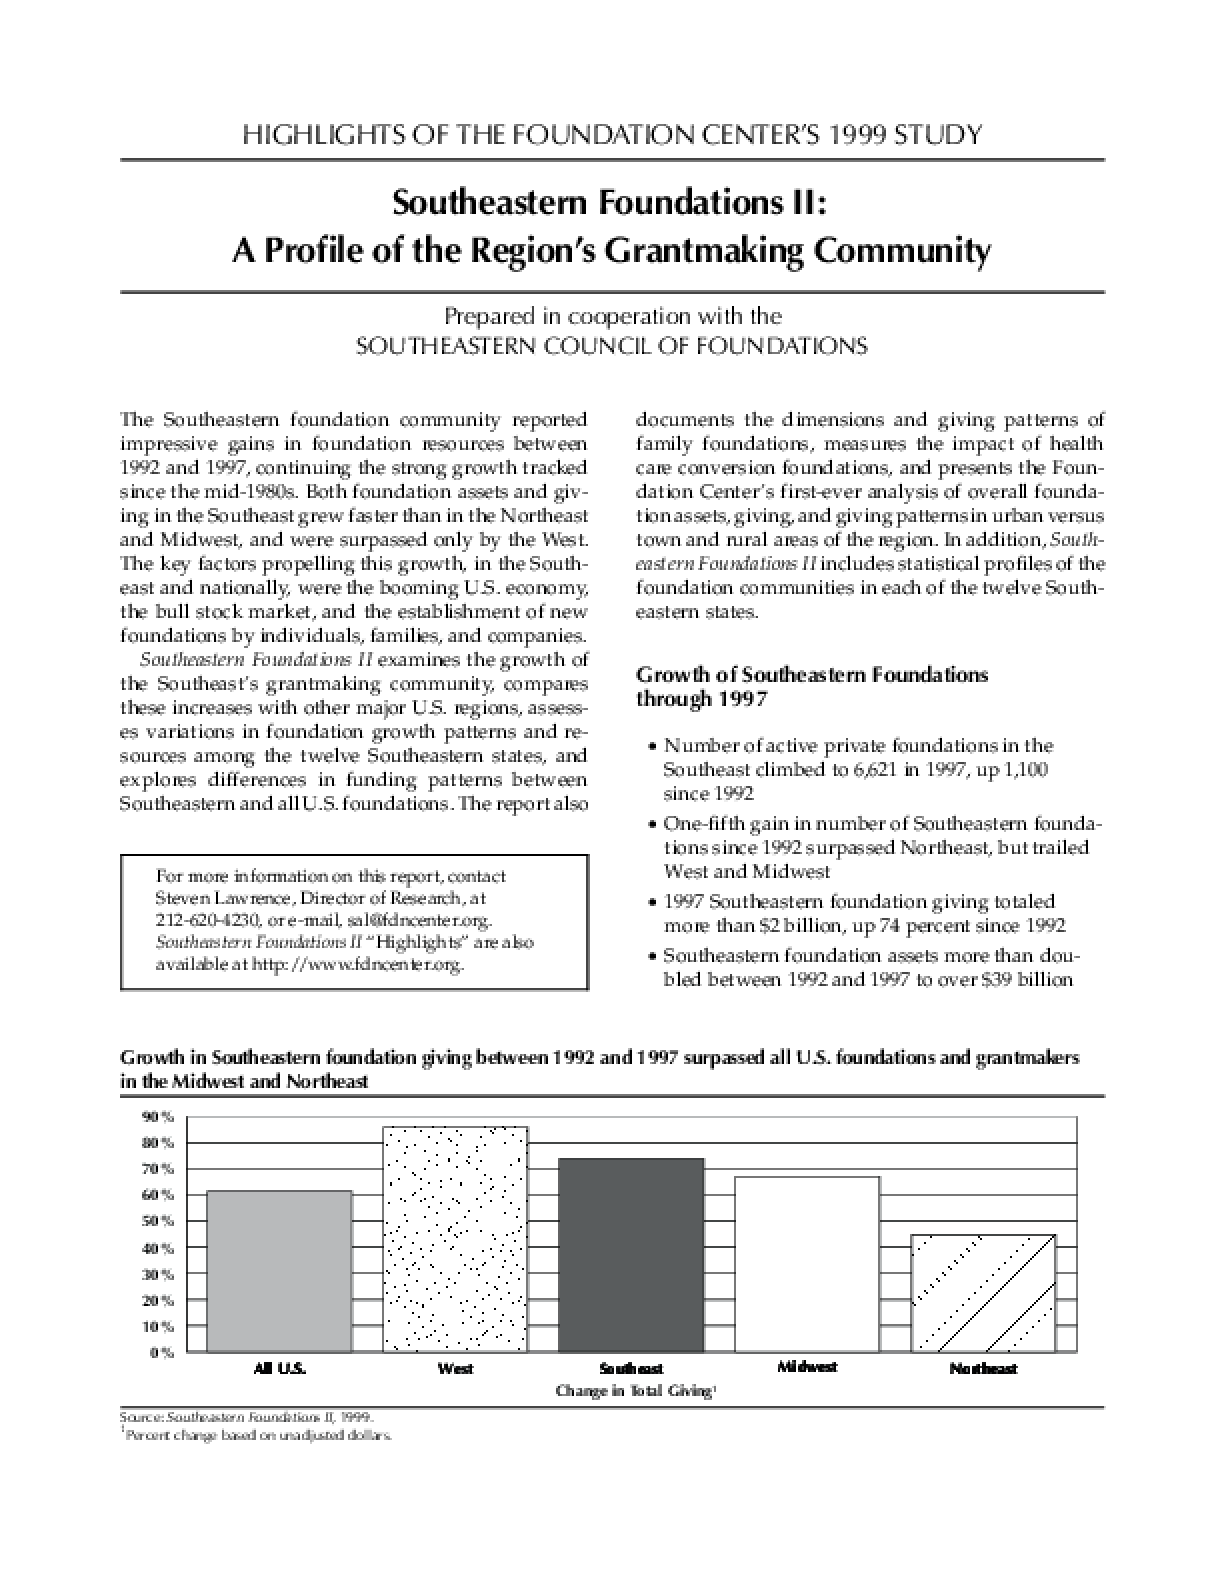 Highlights of the Foundation Center's 1999 Study: Southeastern Foundations II - A Profile of the Region's Grantmaking Community